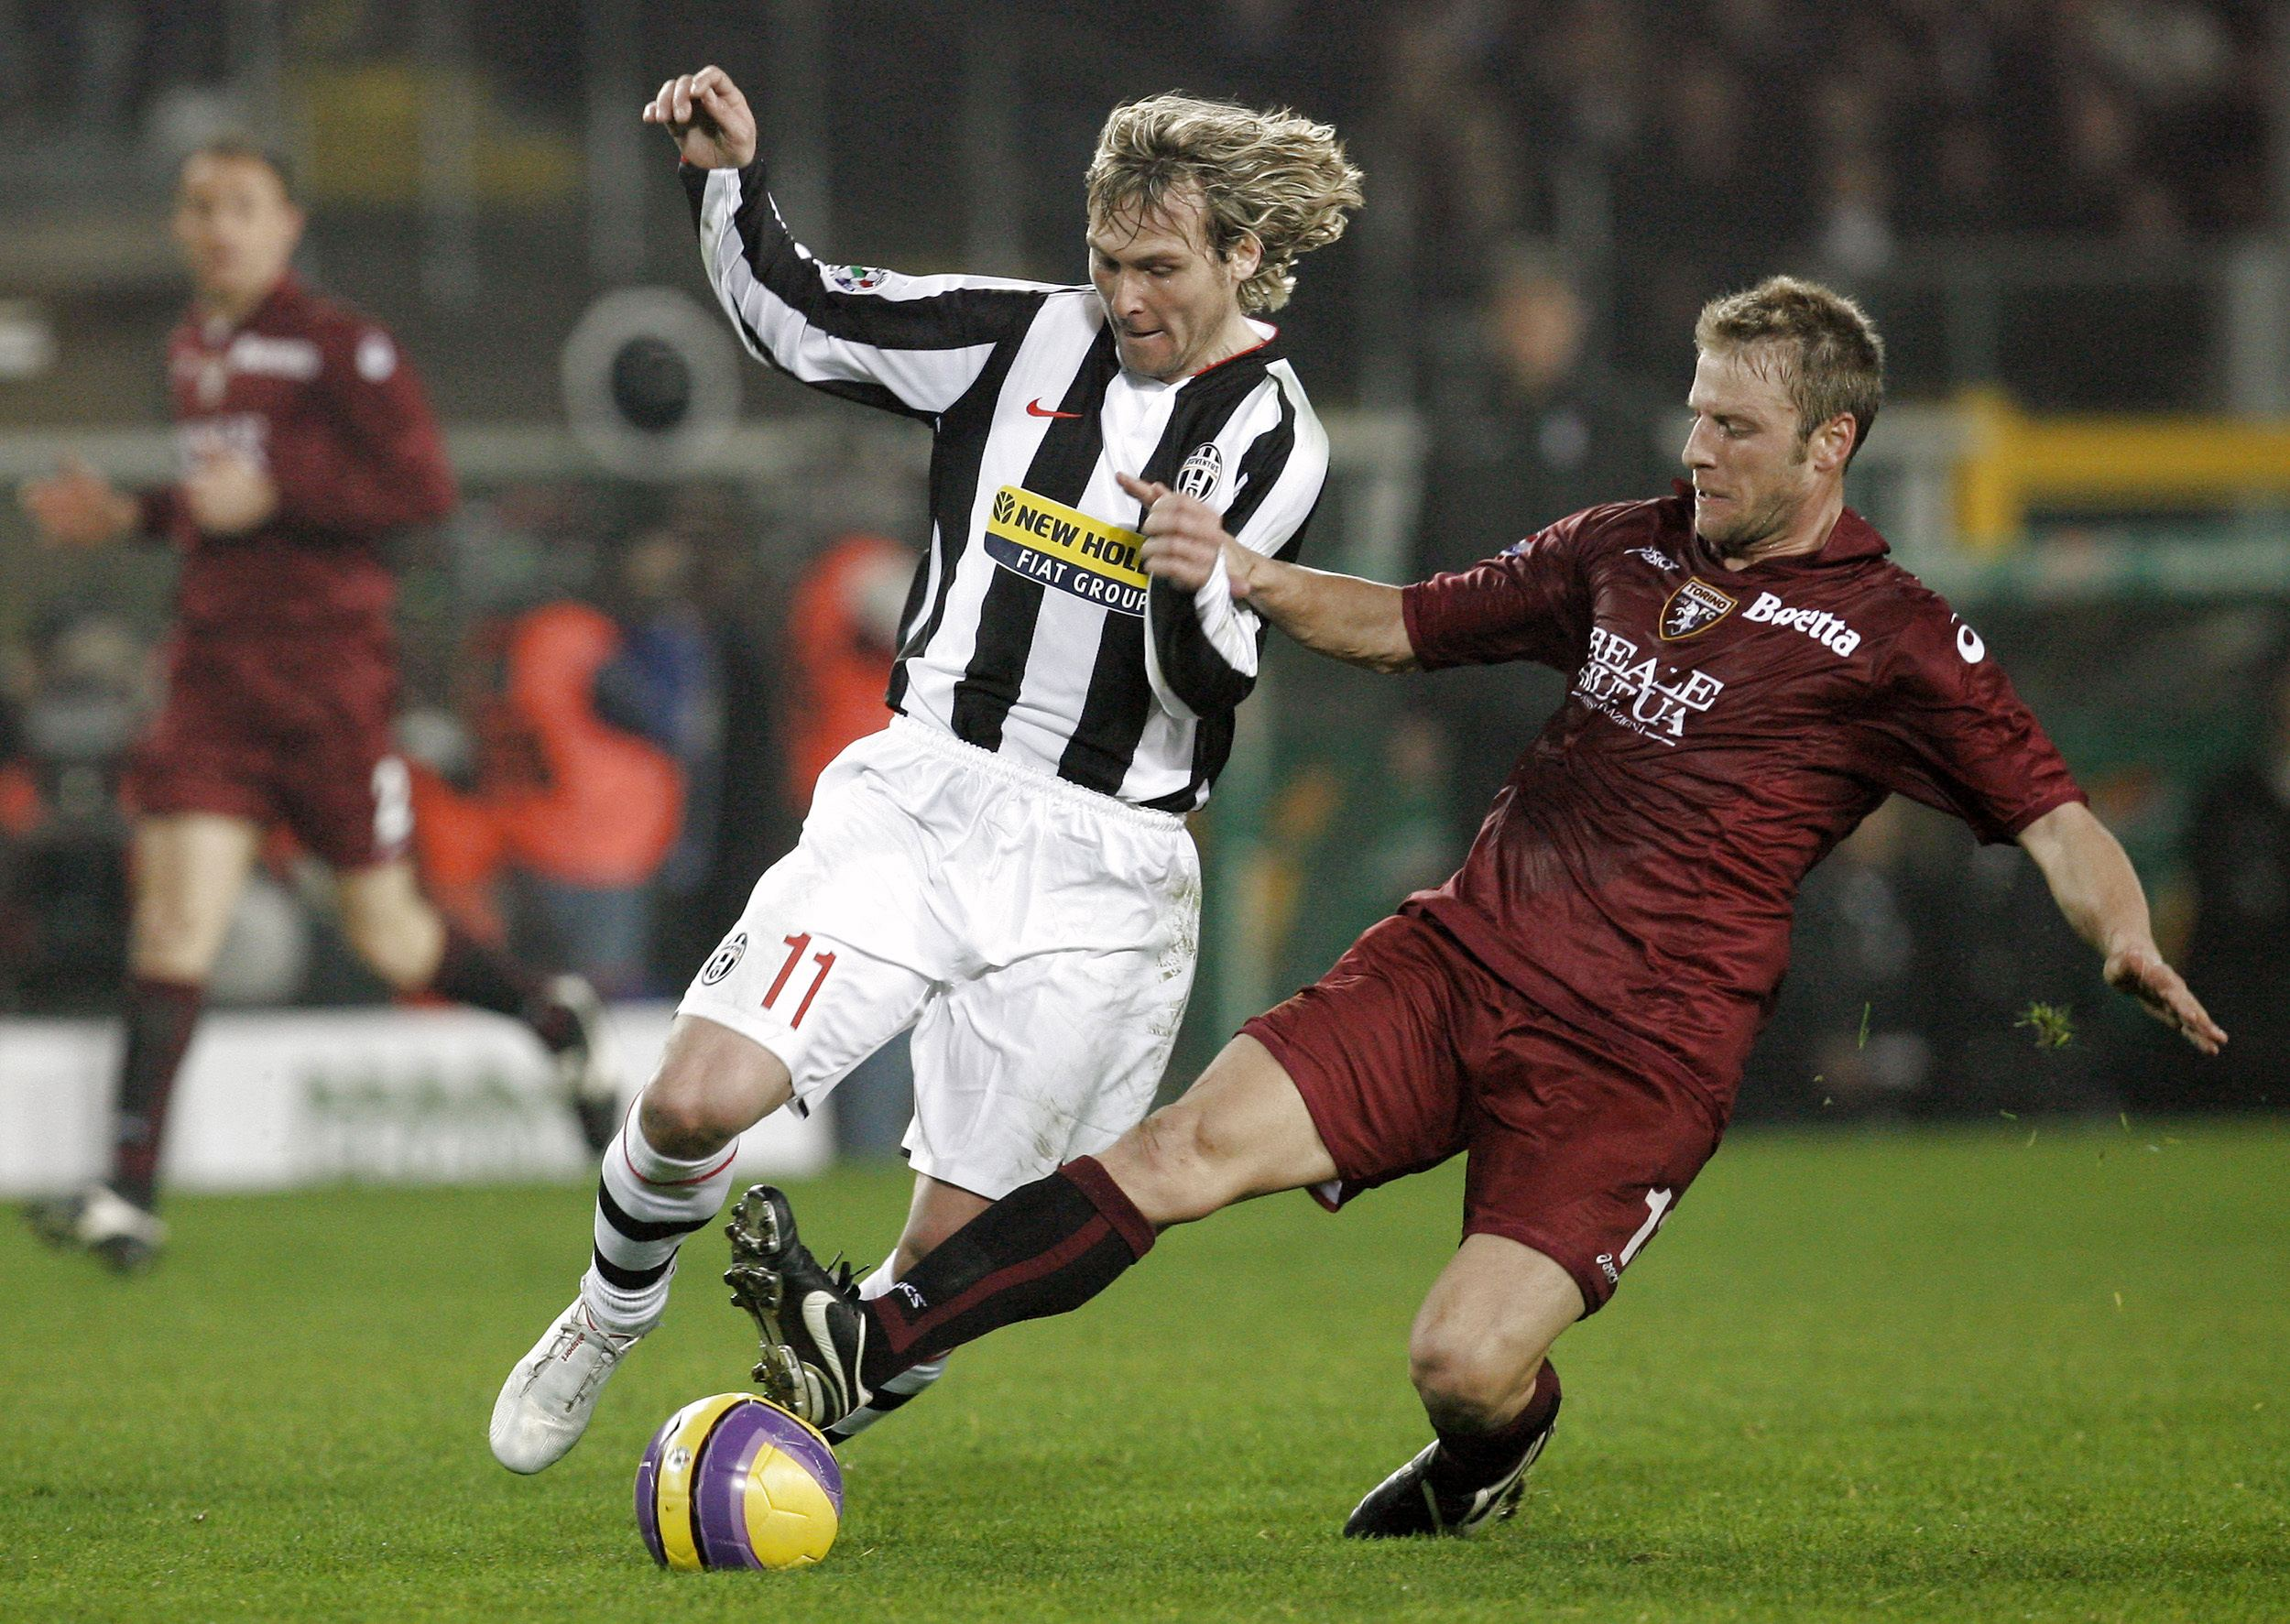 Juventus' Pavel Nedved, left, and Torino's Vincenzo Grella fight for the ball during their Italian Serie A soccer match in Turin, Italy on Tuesday.